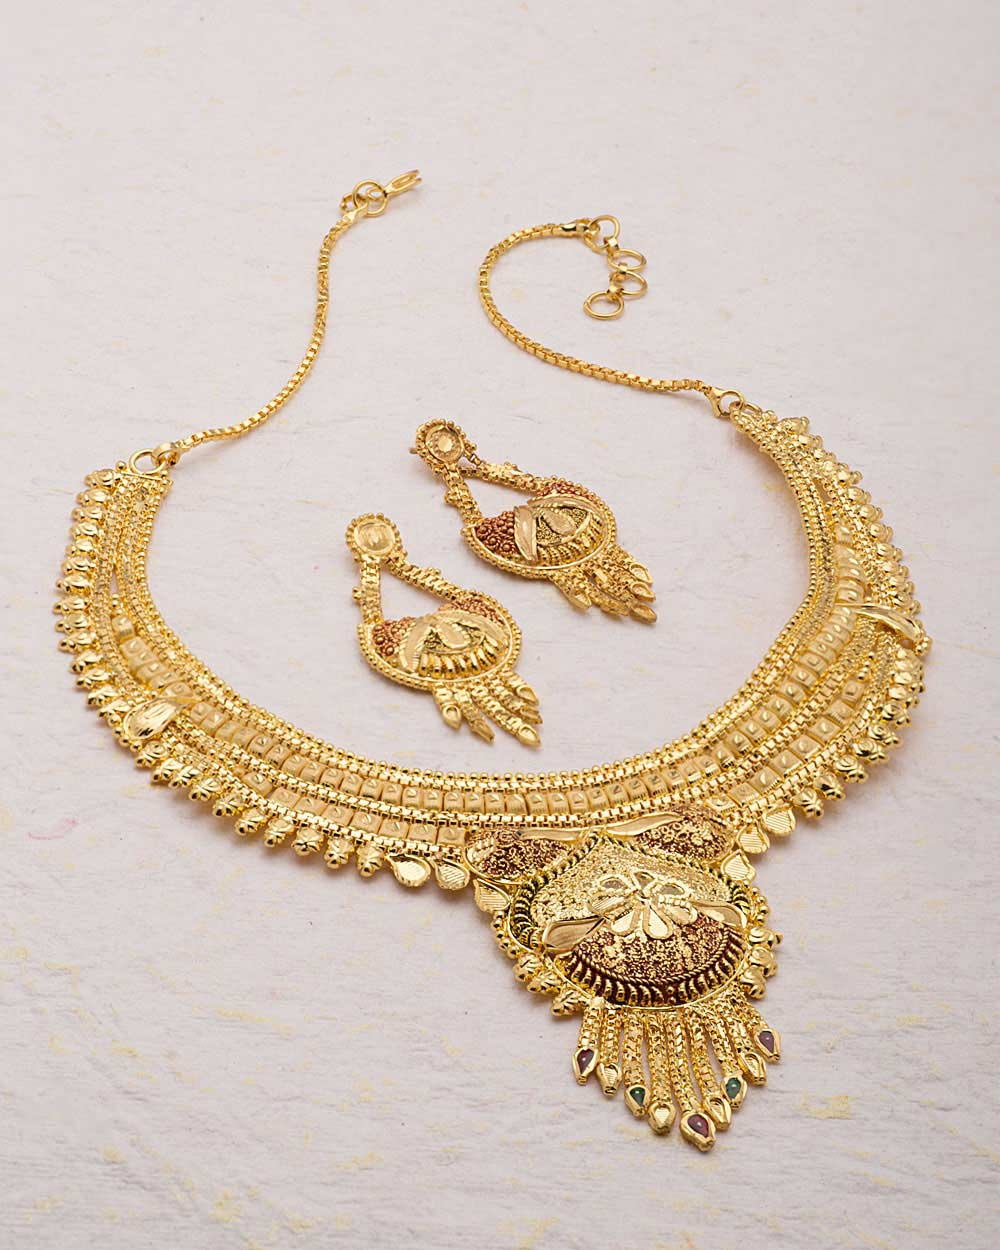 Great Gold Bengali Design Long Necklace Gallery - Jewelry ...